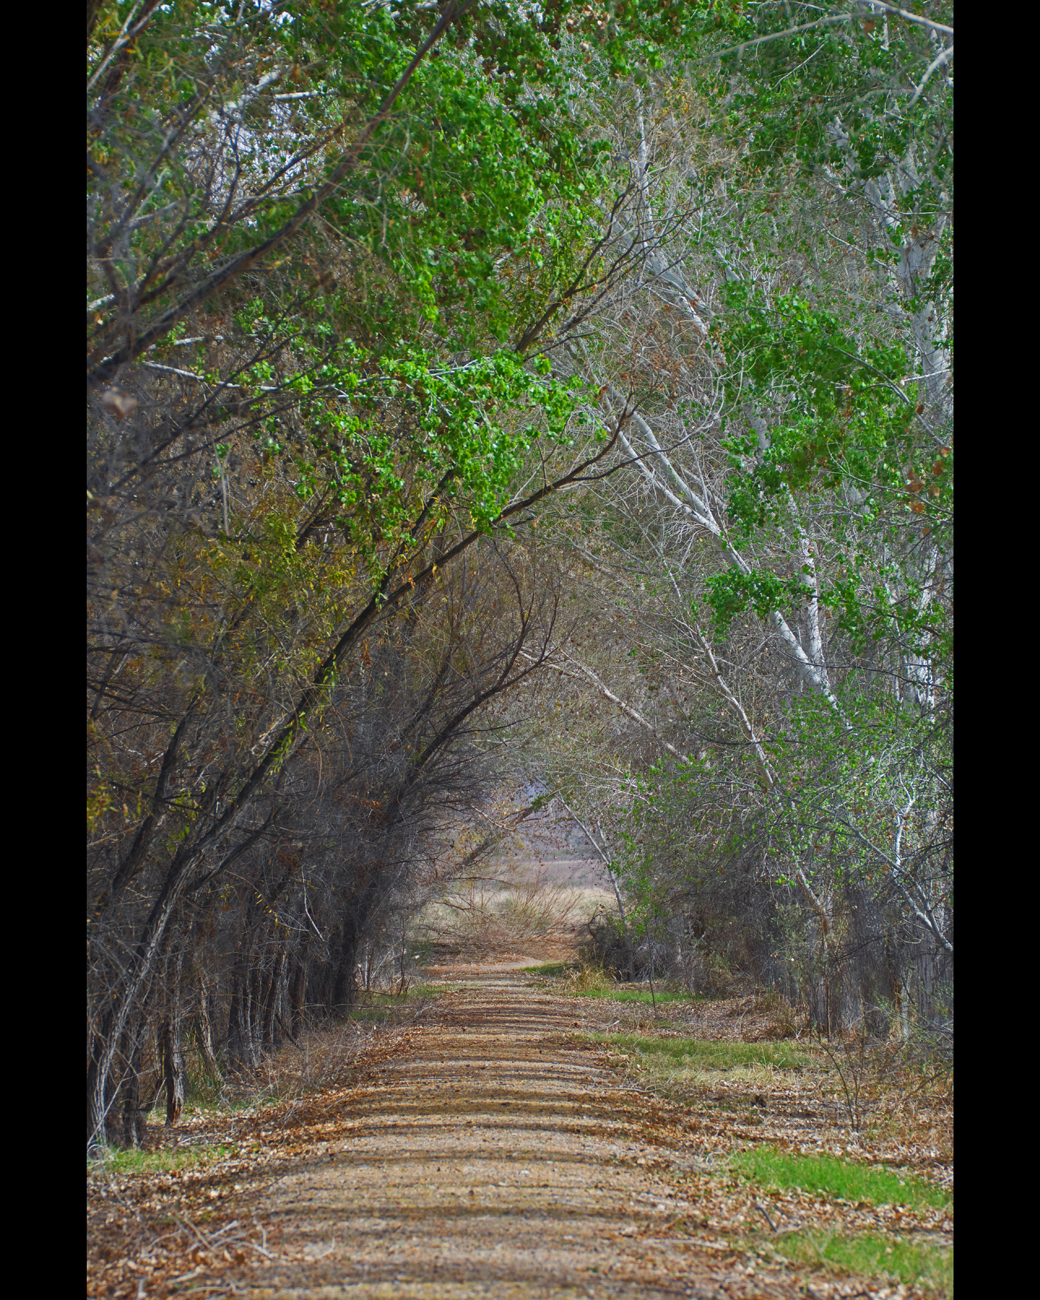 Nature trail with trees forming an arch over the trail at Cibola